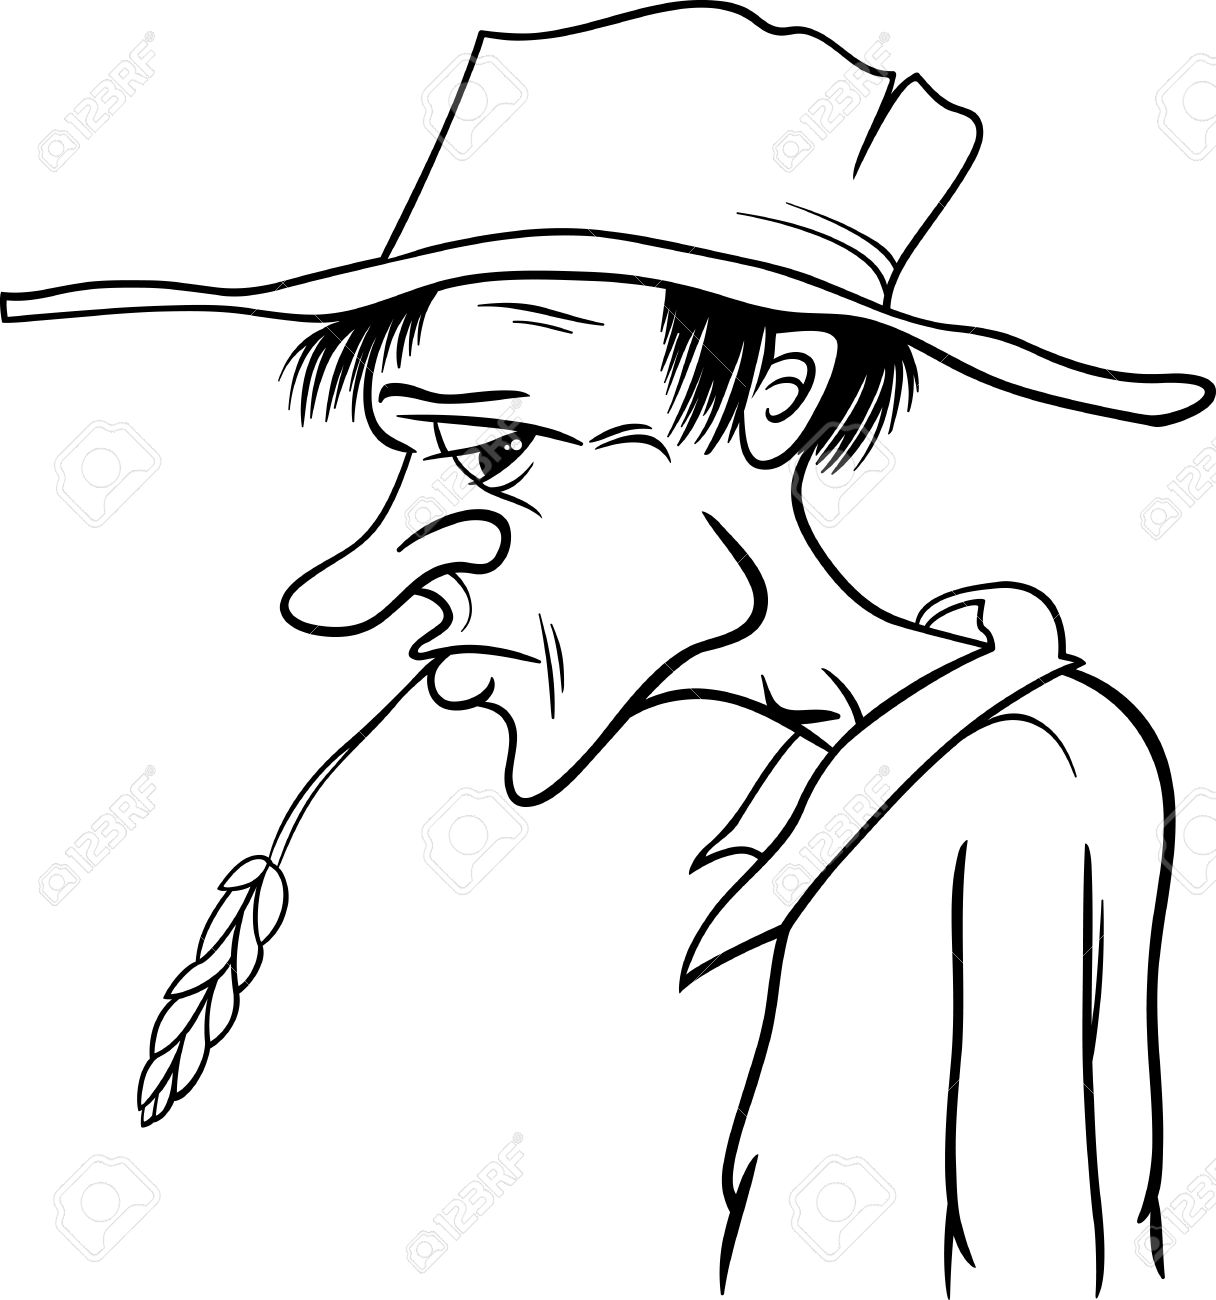 Cowboy Cartoon Drawing